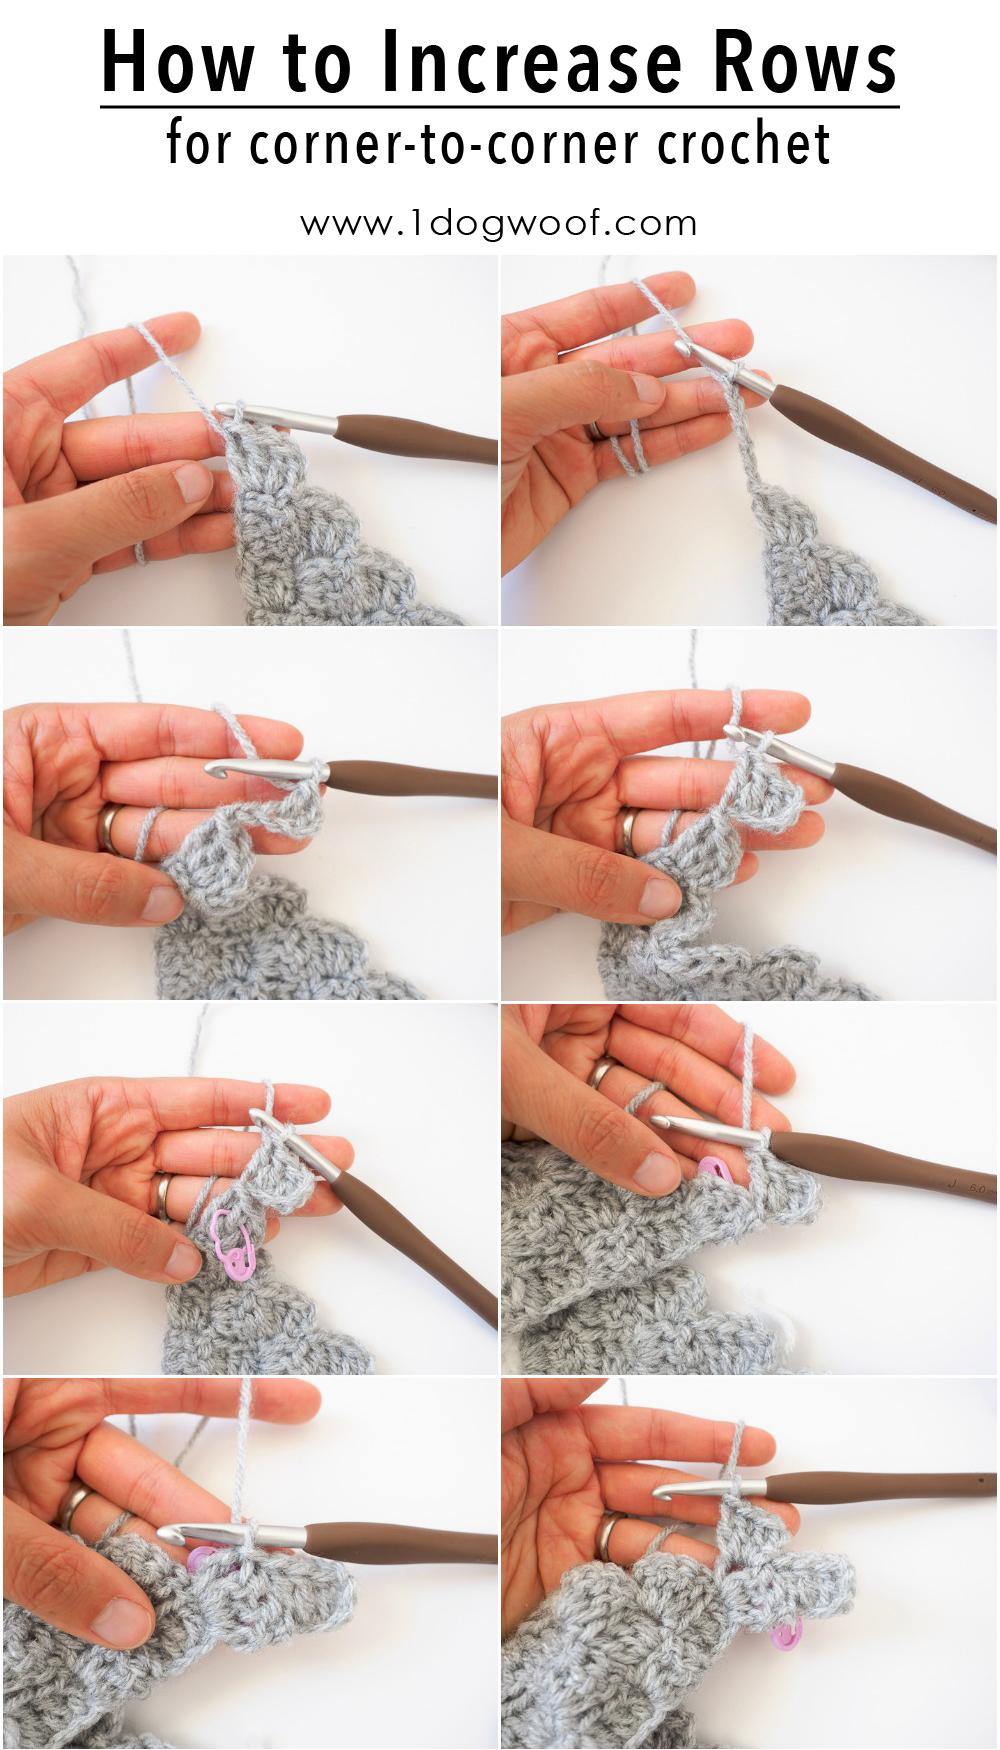 How to Increase Rows in corner to corner crochet